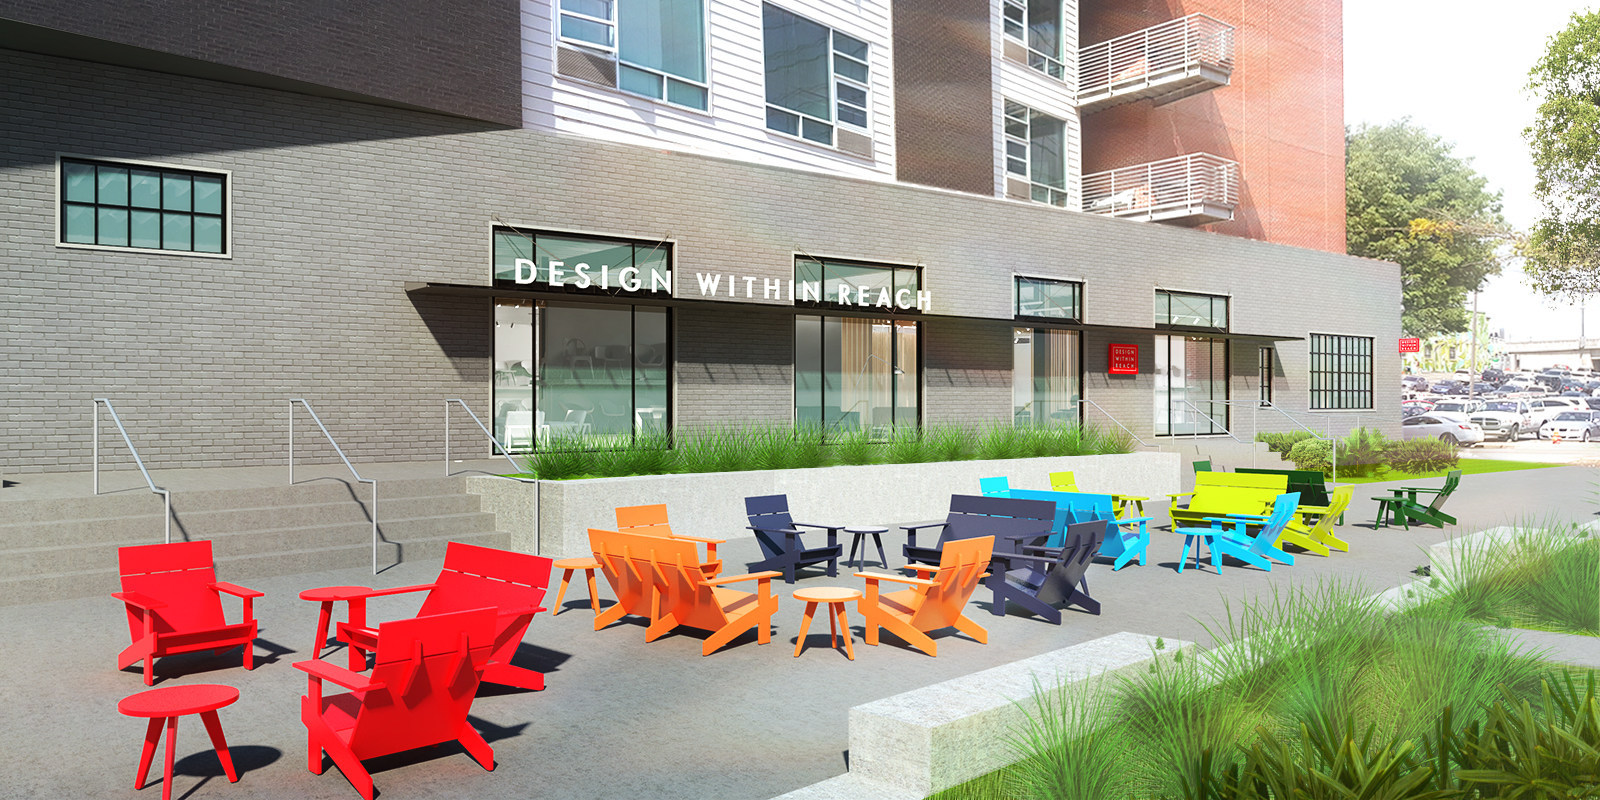 Modern furniture and accessories retailer design within reach dwr has announced the opening of a retail studio in the gulch in nashville tenn